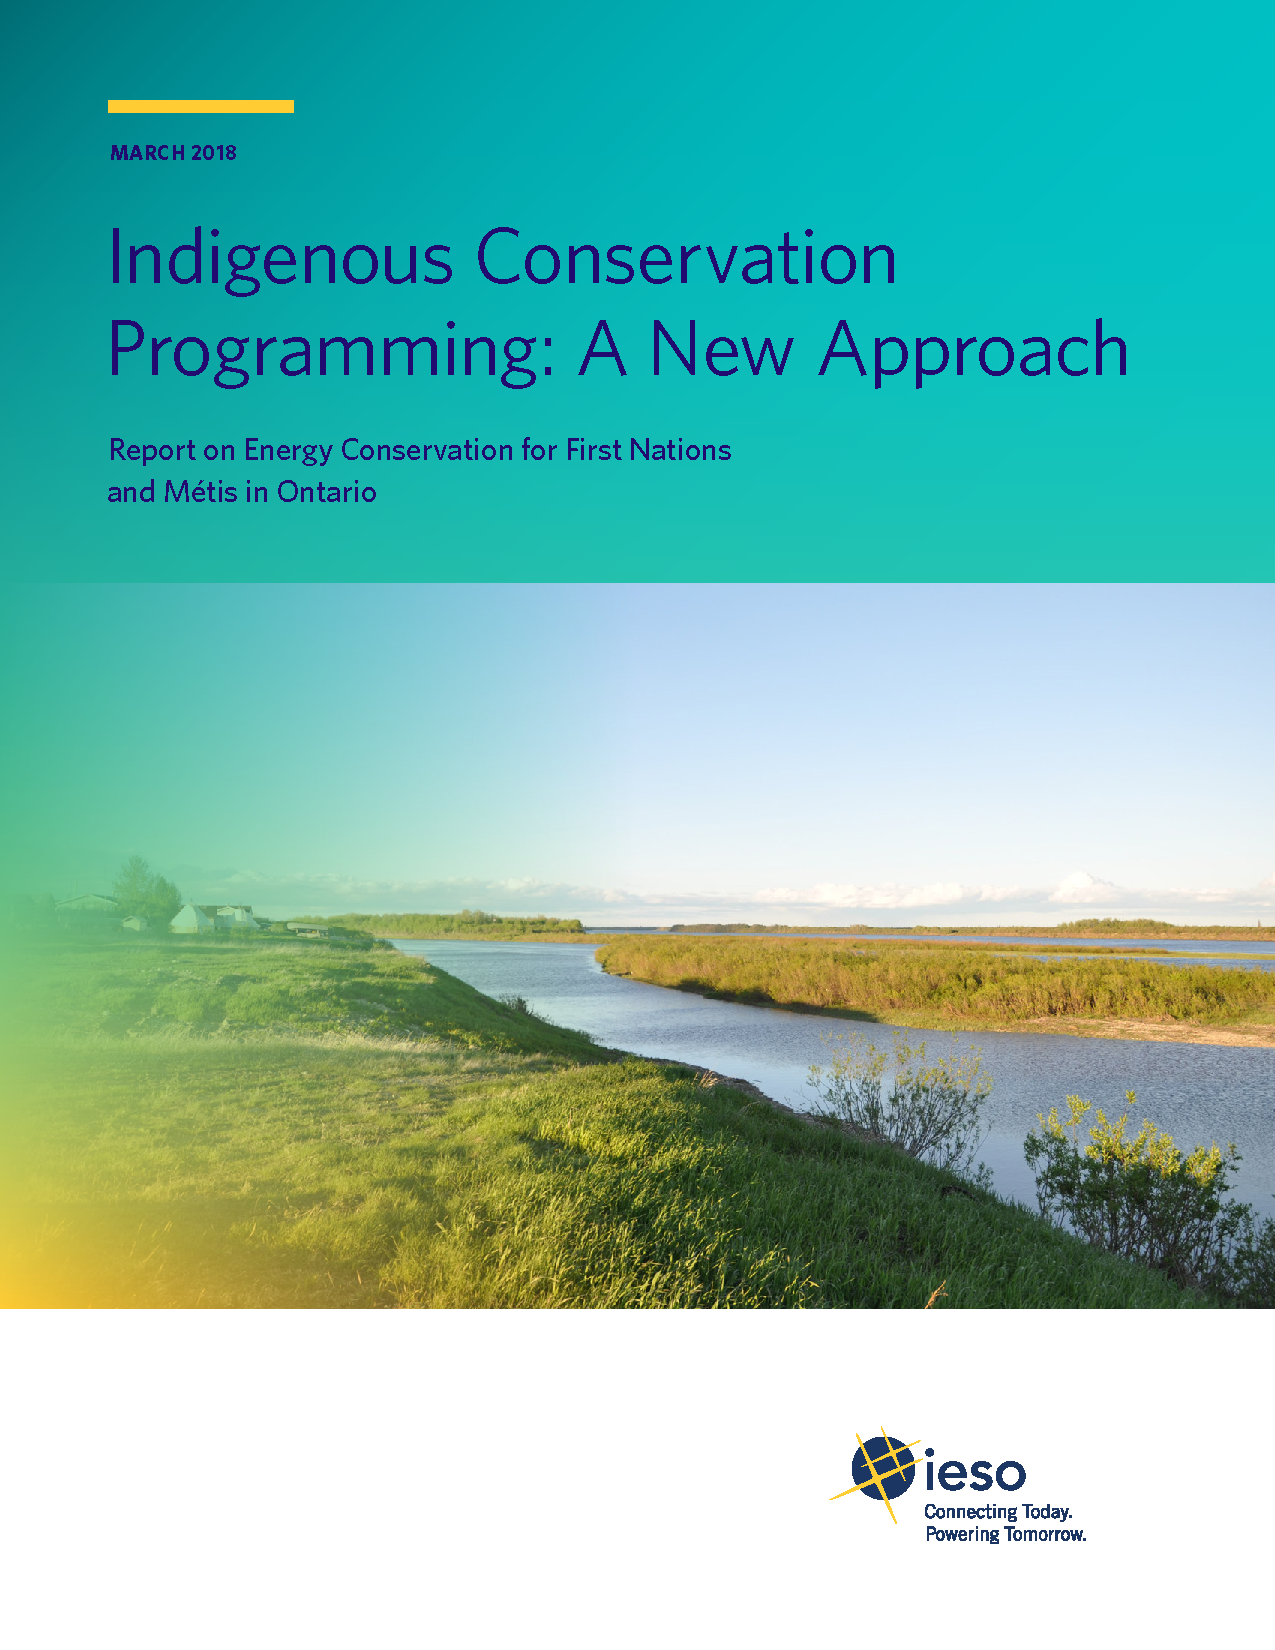 Indigenous Conservation Programming: A New Approach